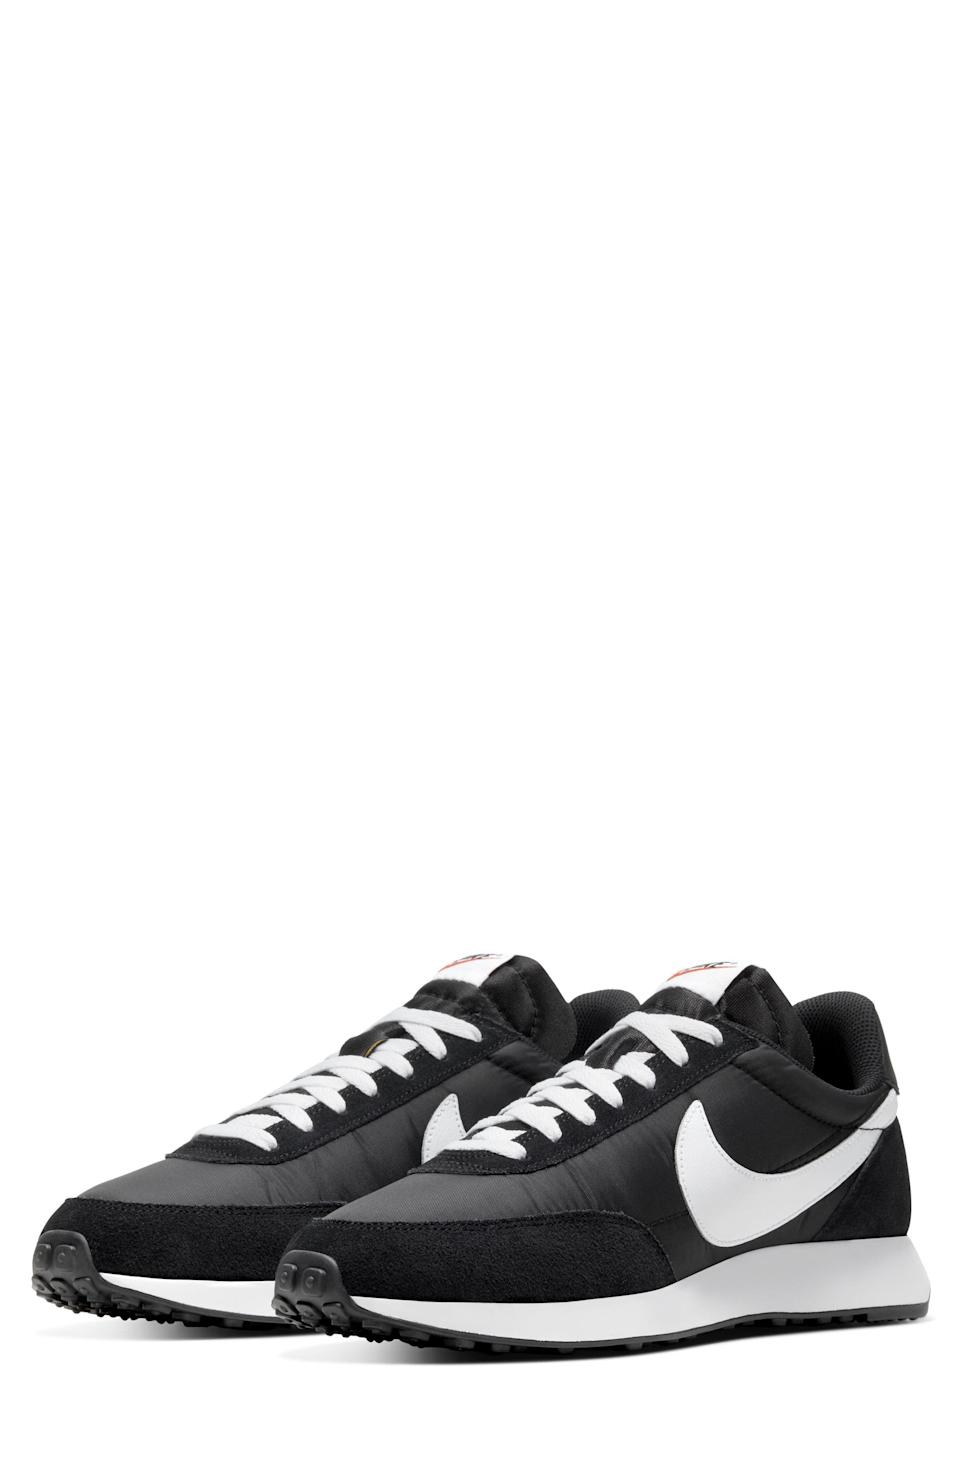 """<p><strong>Nike</strong></p><p>nordstrom.com</p><p><strong>$64.90</strong></p><p><a href=""""https://go.redirectingat.com?id=74968X1596630&url=https%3A%2F%2Fwww.nordstrom.com%2Fs%2Fnike-air-tailwind-79-sneaker-men%2F6422084&sref=https%3A%2F%2Fwww.menshealth.com%2Fstyle%2Fg37081969%2Fnordstroms-anniversary-sale-best-sneakers%2F"""" rel=""""nofollow noopener"""" target=""""_blank"""" data-ylk=""""slk:BUY IT HERE"""" class=""""link rapid-noclick-resp"""">BUY IT HERE</a></p><p><del>$90</del><strong><br>$64.90</strong></p><p>Those who want to have the athletic look at all hours of the day will love wearing these sleek sneaks from Nike. Style them with your favorite jeans or a pair of <a href=""""https://www.menshealth.com/style/g36097646/mens-gym-shorts/"""" rel=""""nofollow noopener"""" target=""""_blank"""" data-ylk=""""slk:gym shorts"""" class=""""link rapid-noclick-resp"""">gym shorts</a>—you won't go wrong here.</p>"""